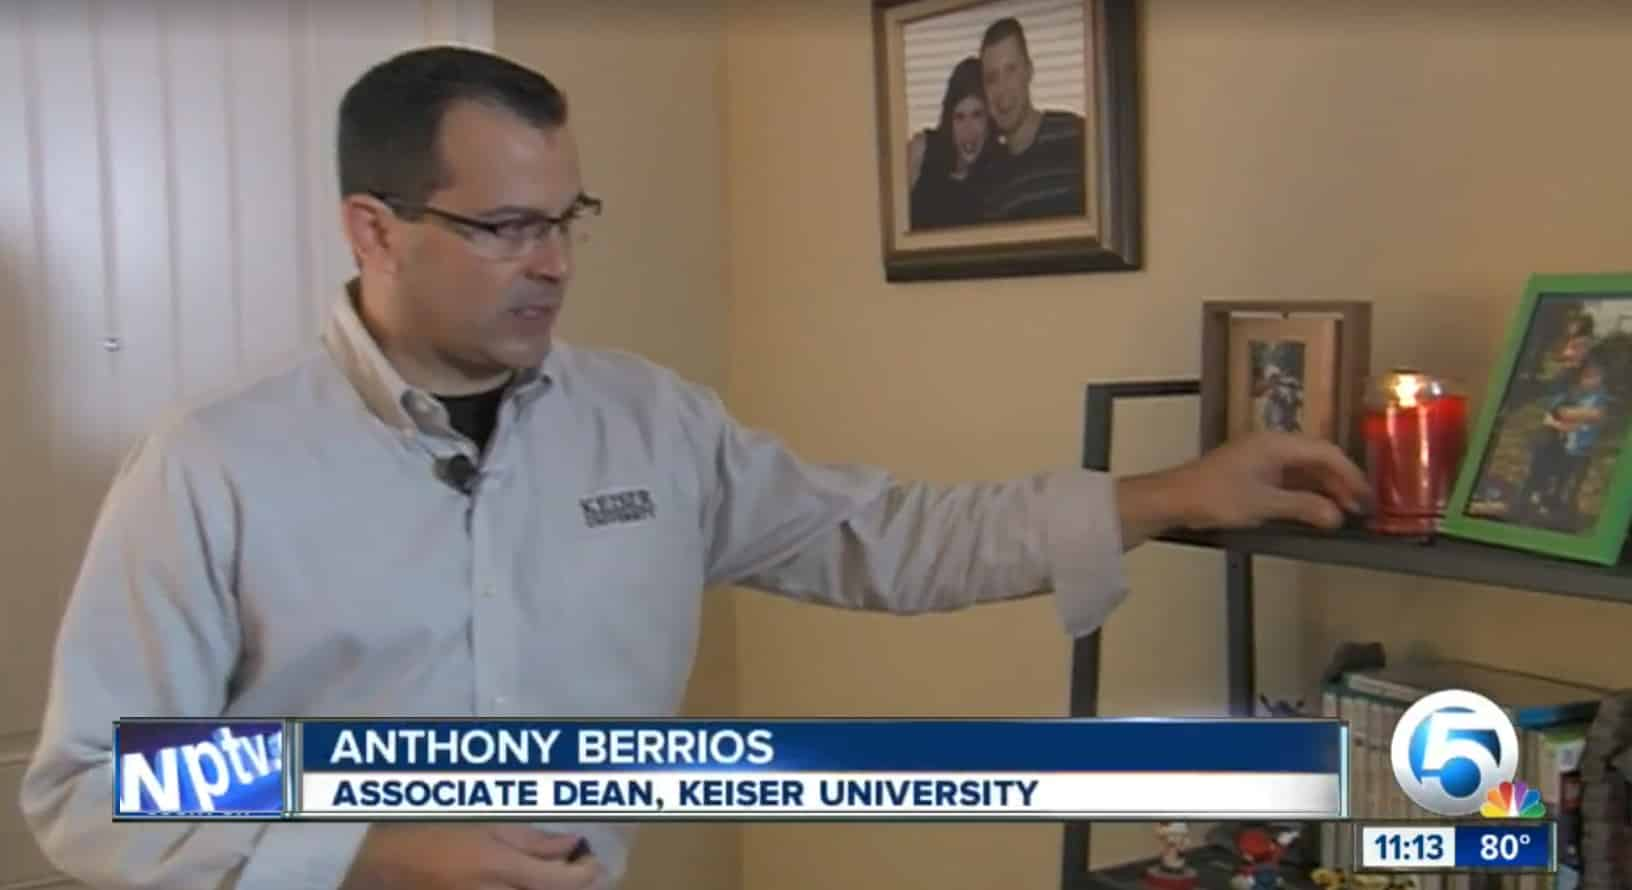 West Palm Beach Campus Expert Shares Valuable Home Security Tips with NBC